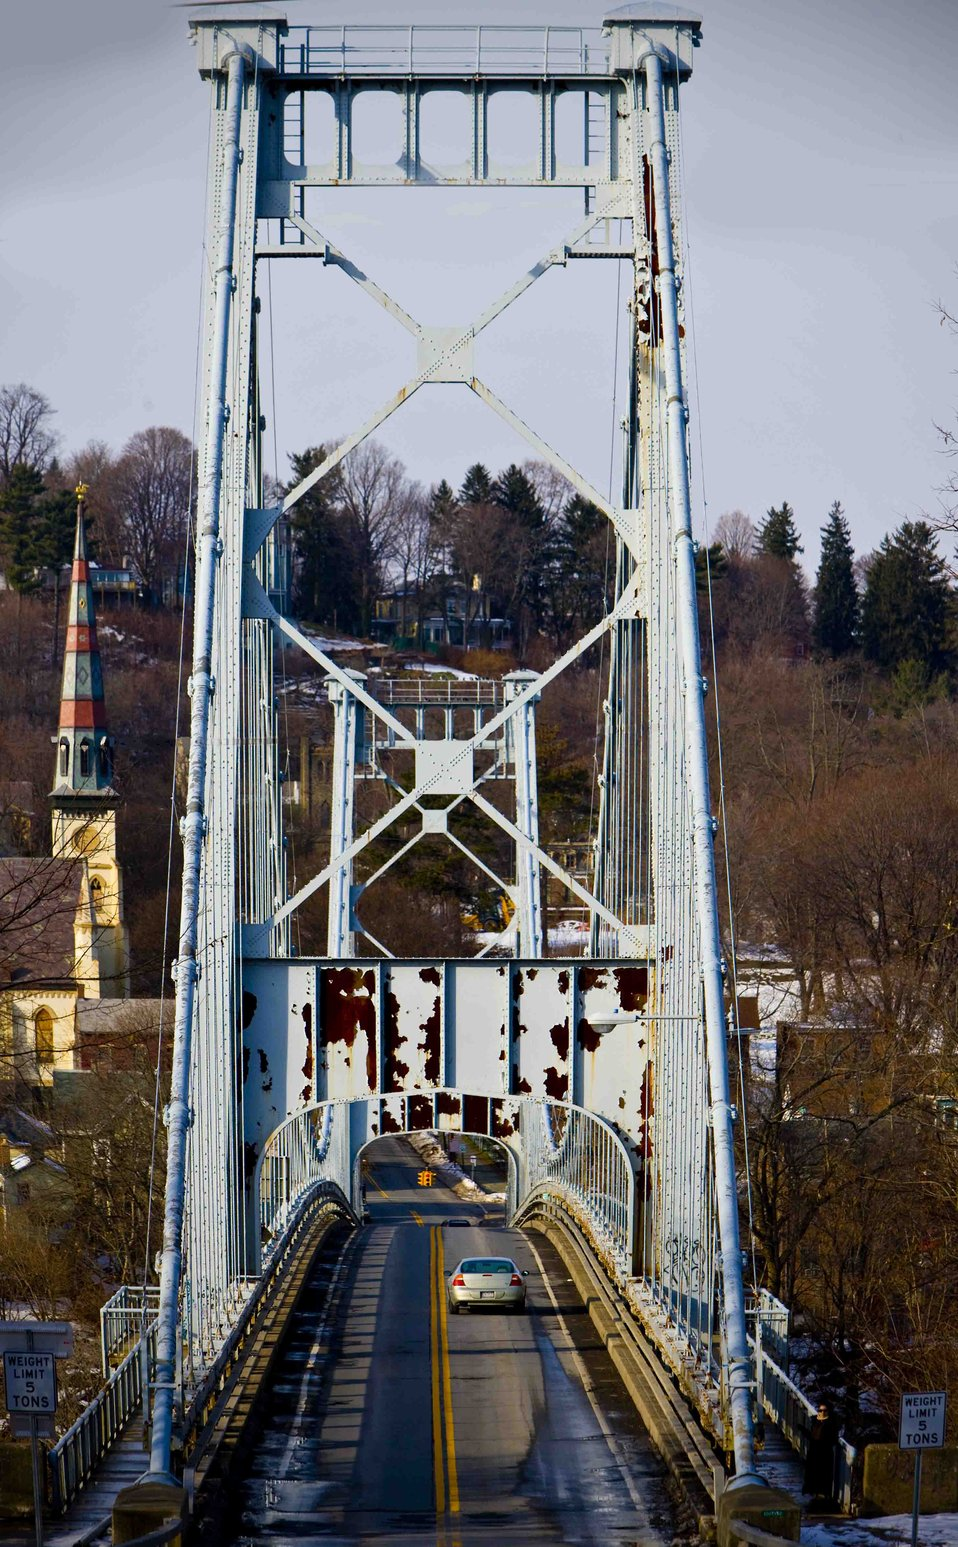 a photograph of the Wurts street Bridge from the Rondout in Kingston NY to Port Ewen NY Over the Rondout Creek, viewed from the Port Ewen approach. Completed in 1921 The bridge is limited to 5 tons and is expected to be renovated in 2009 by the state depa